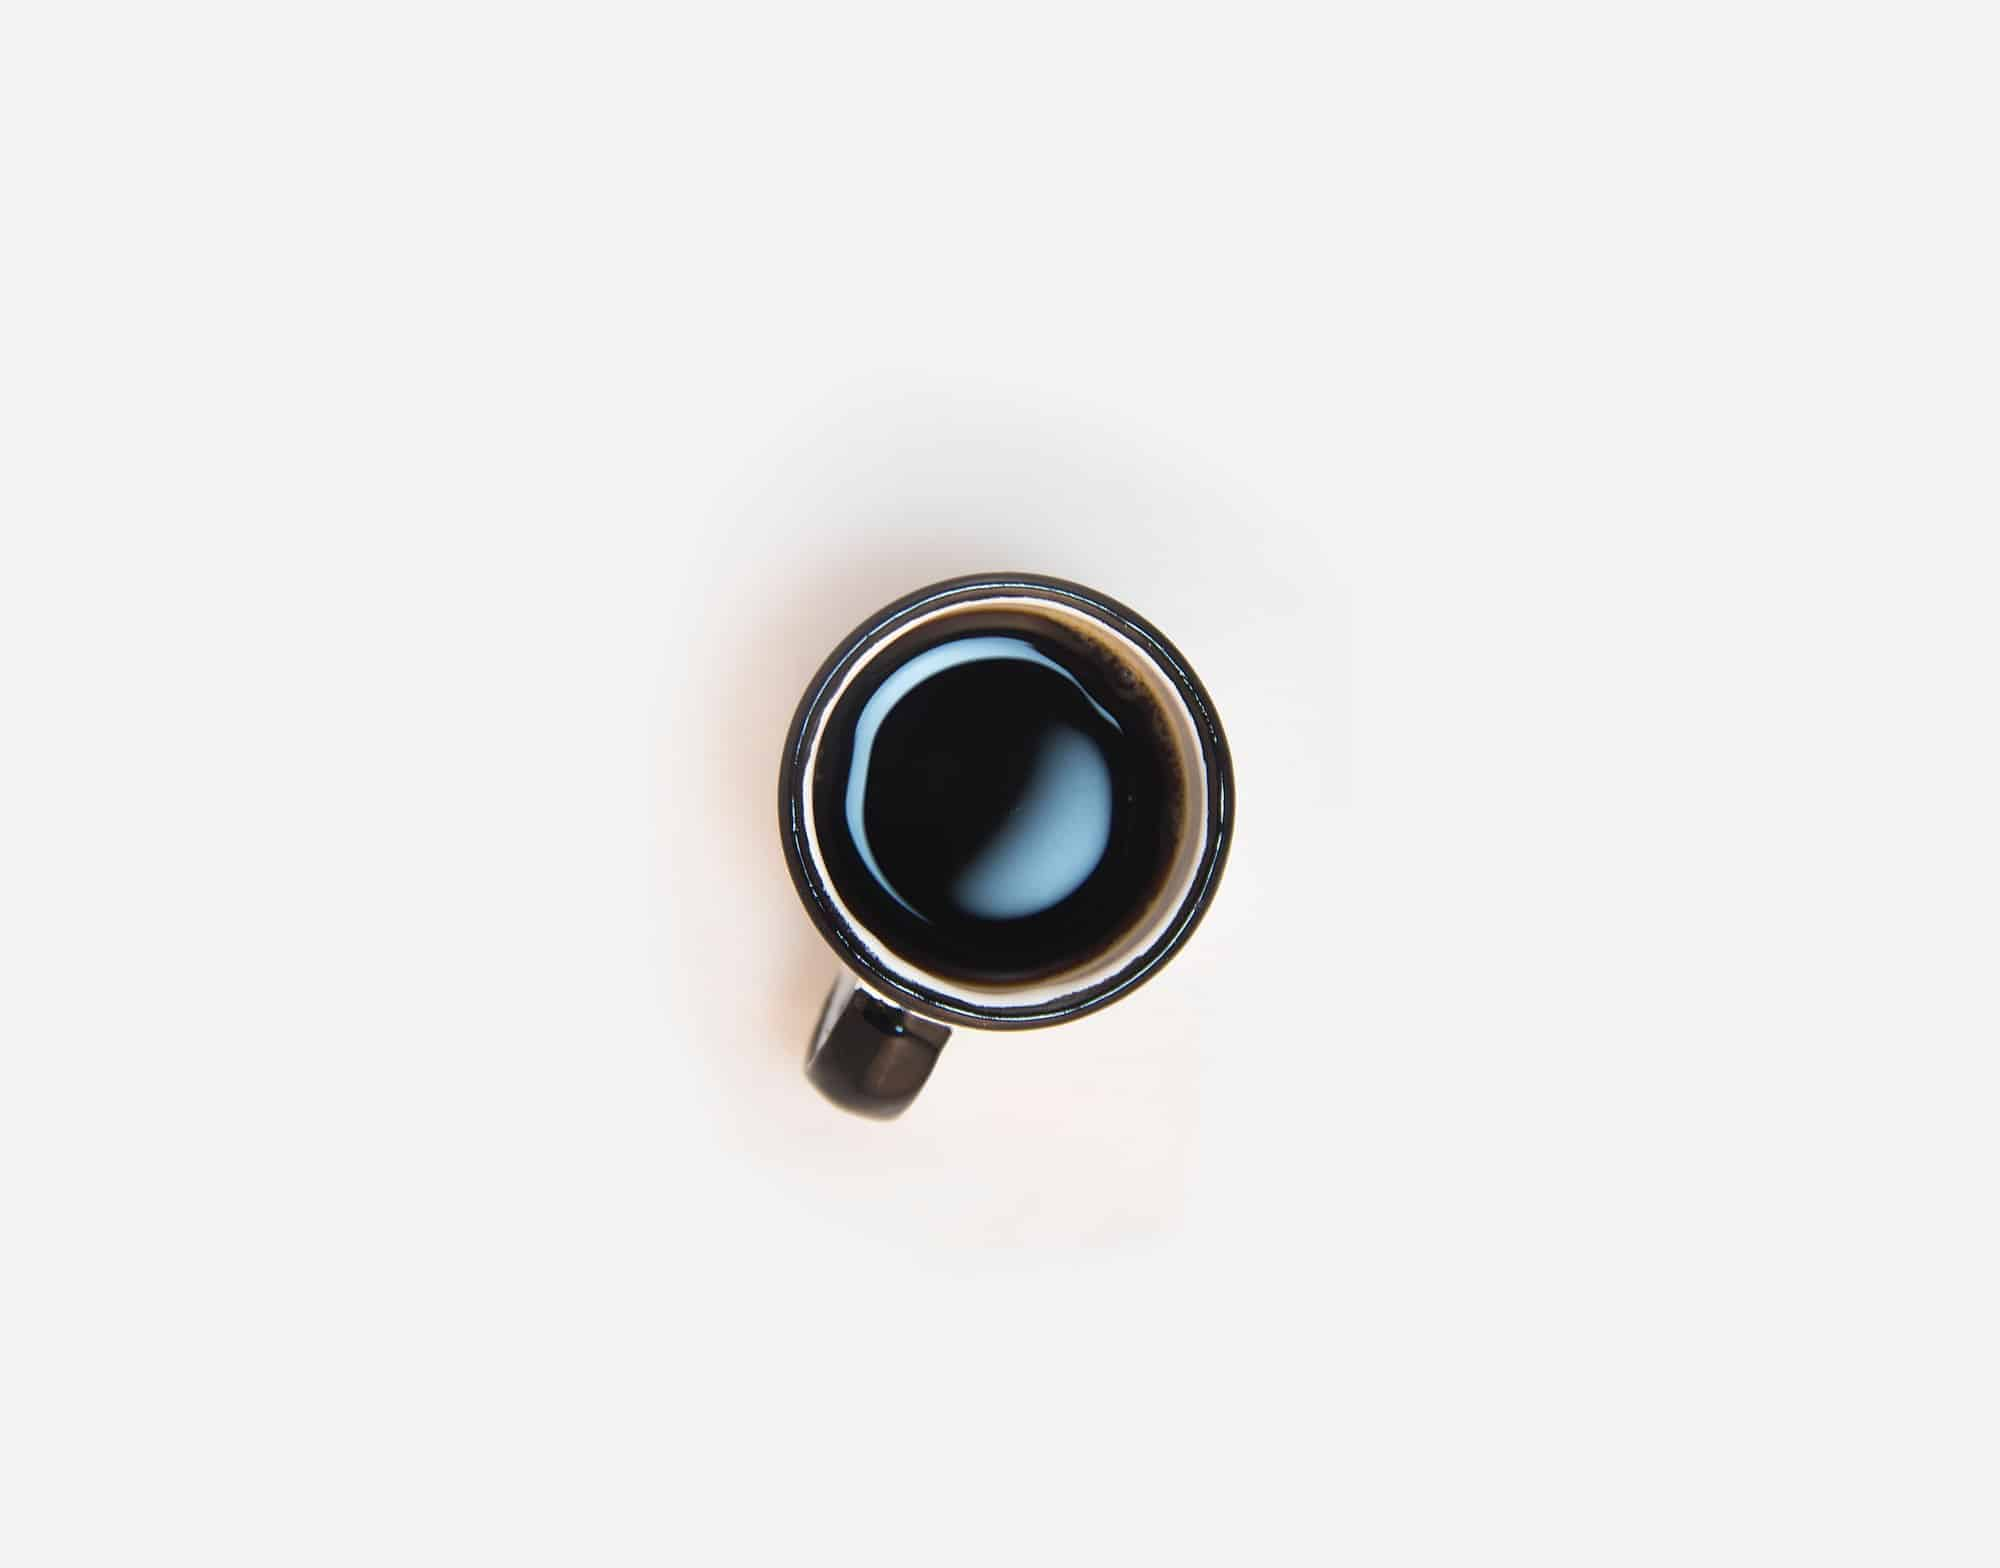 How to drink black coffee and enjoy it - Black Coffee Mug